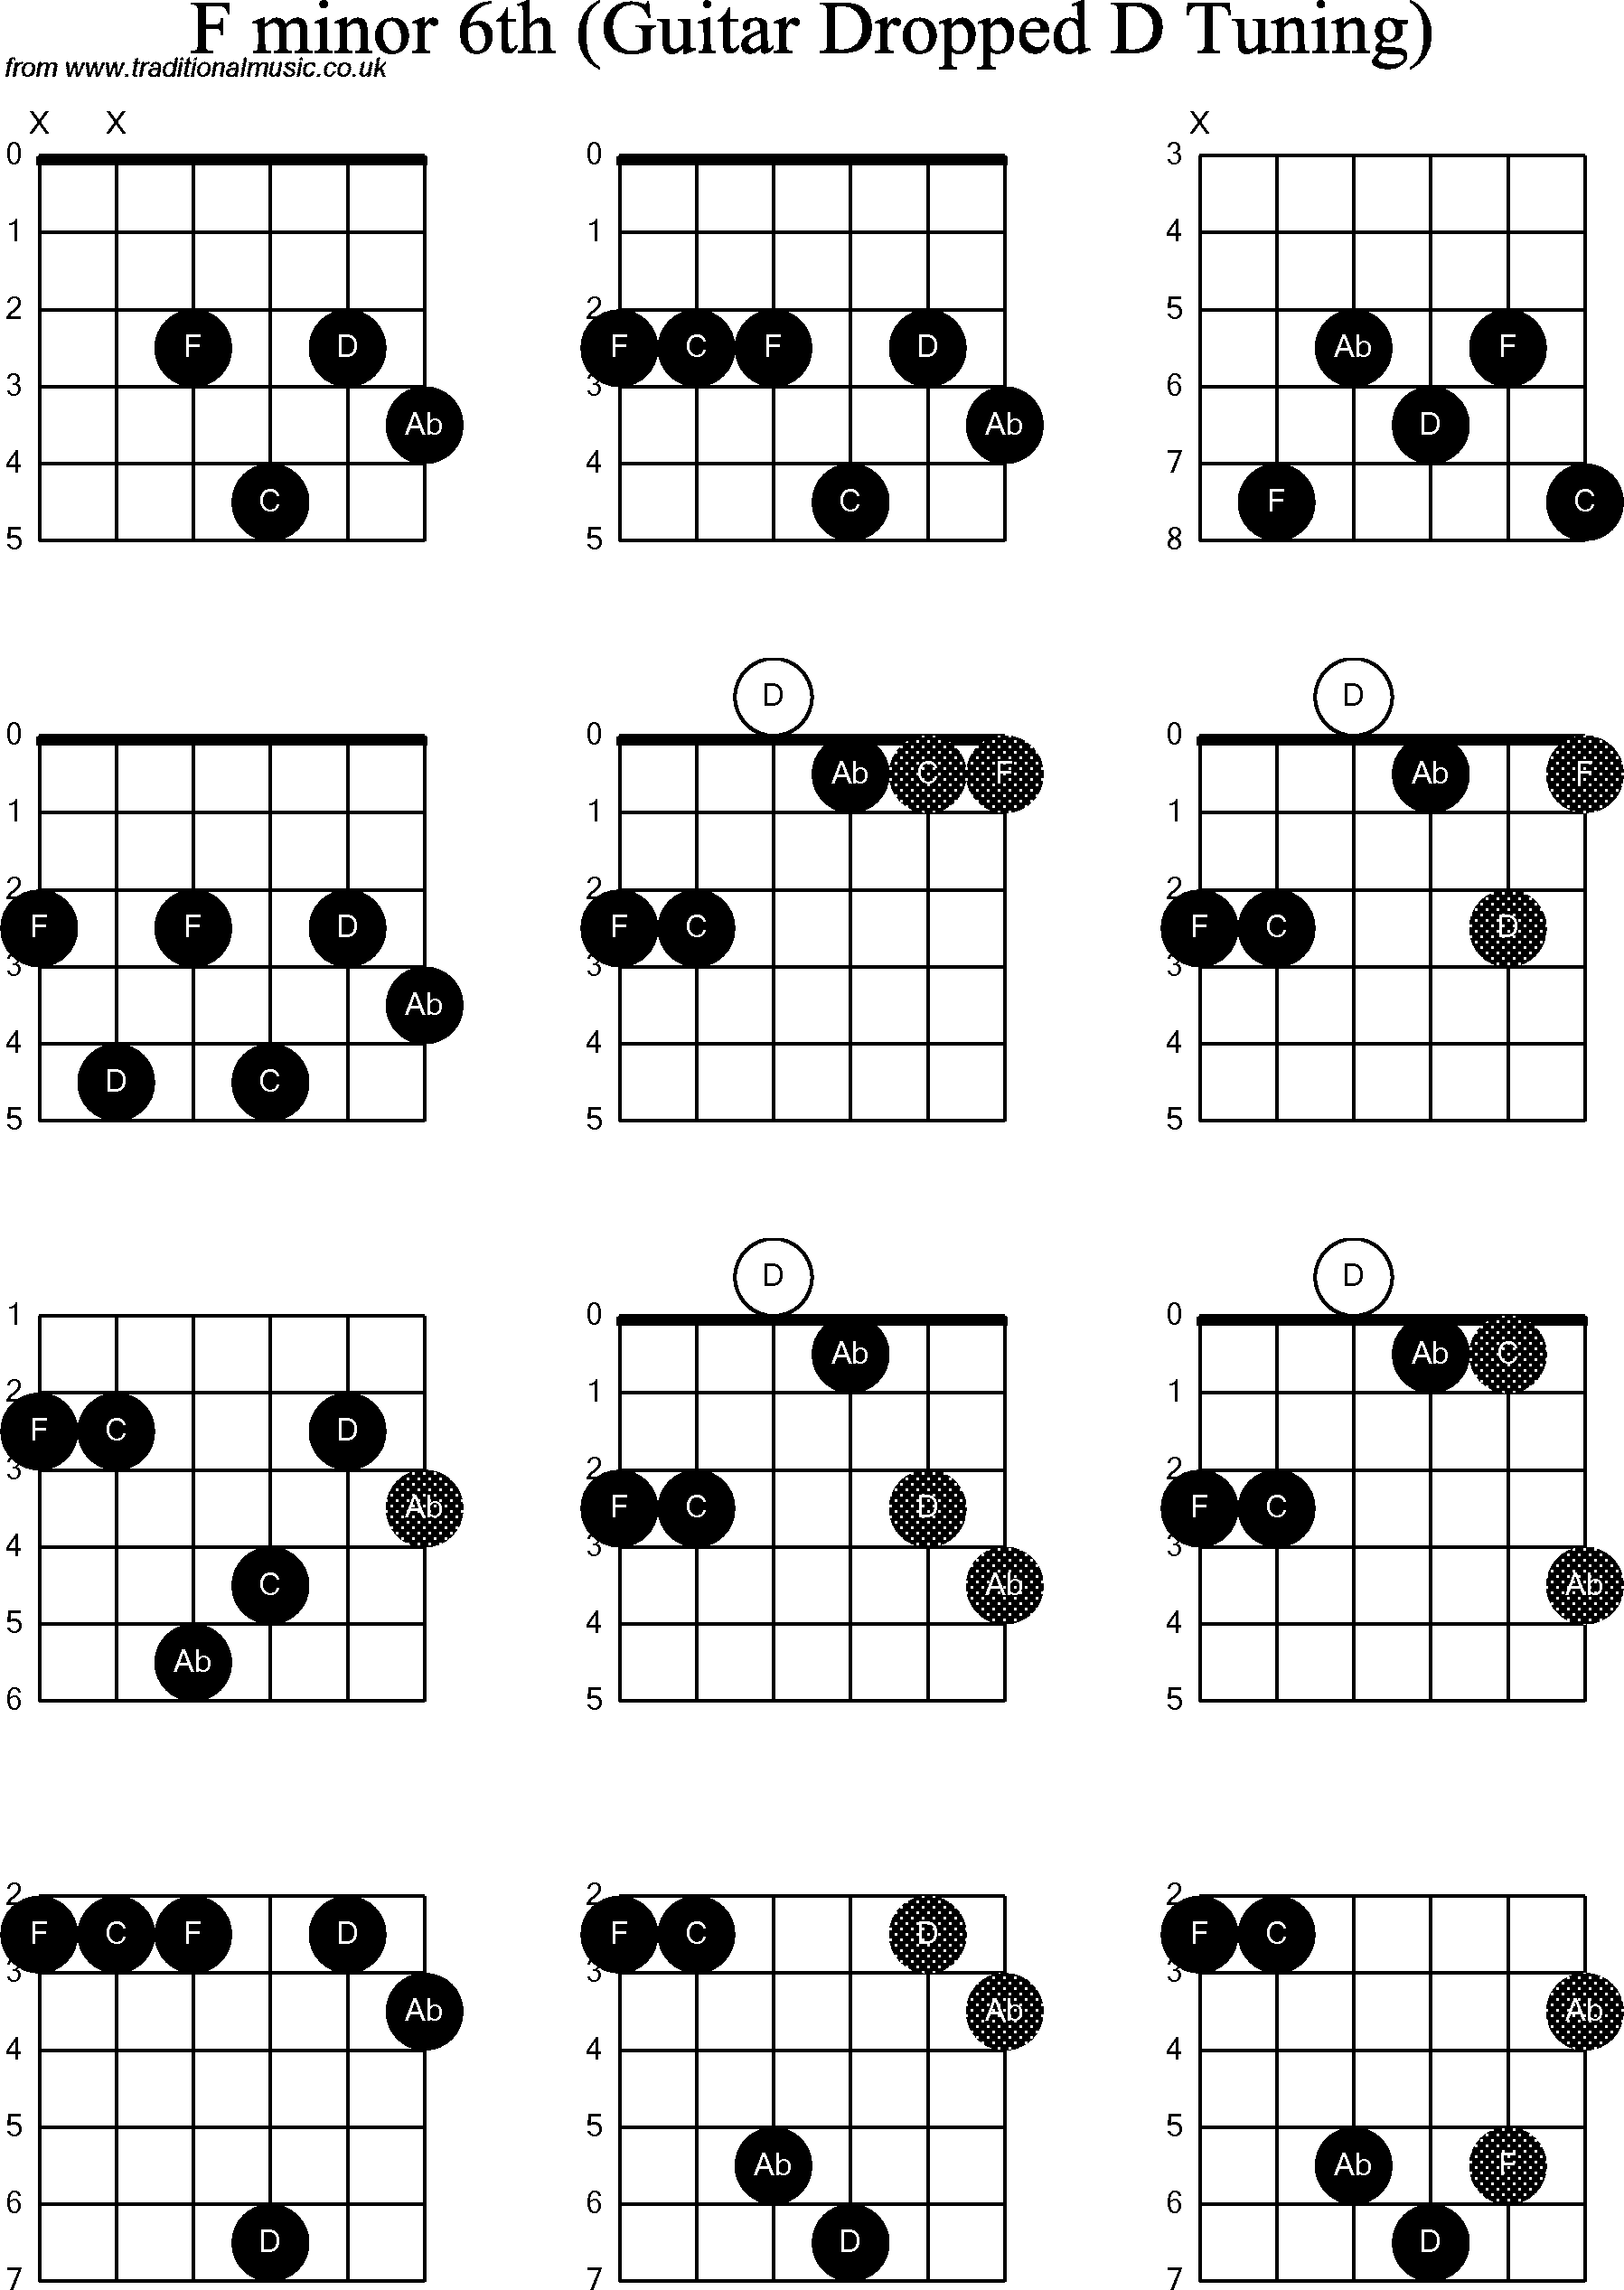 Chord Diagrams For Dropped D Guitardadgbe F Minor6th